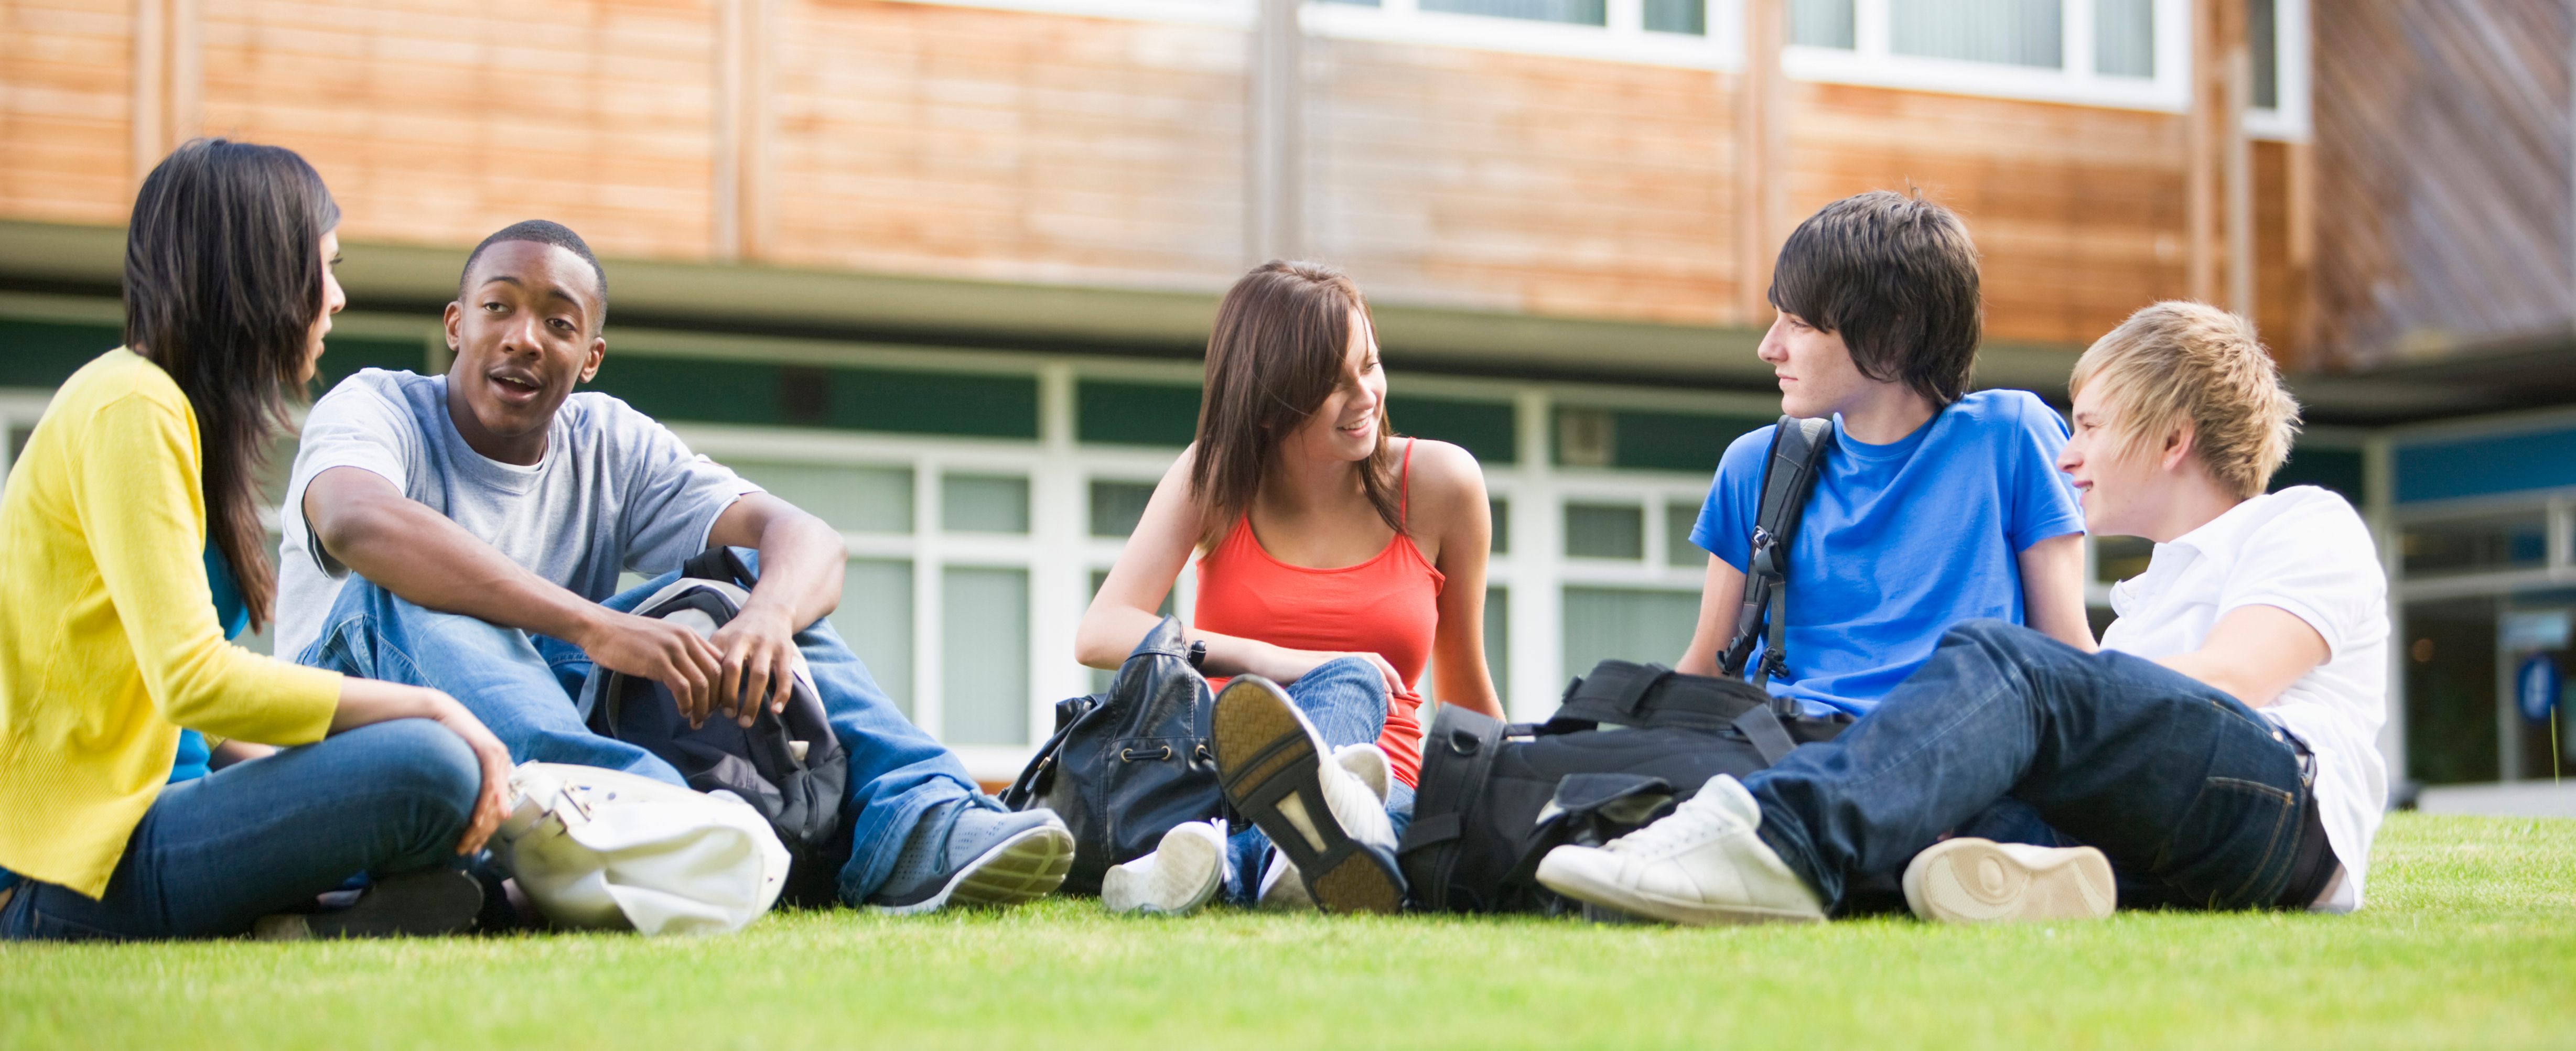 Students_sitting_in_college_-_cropped.png